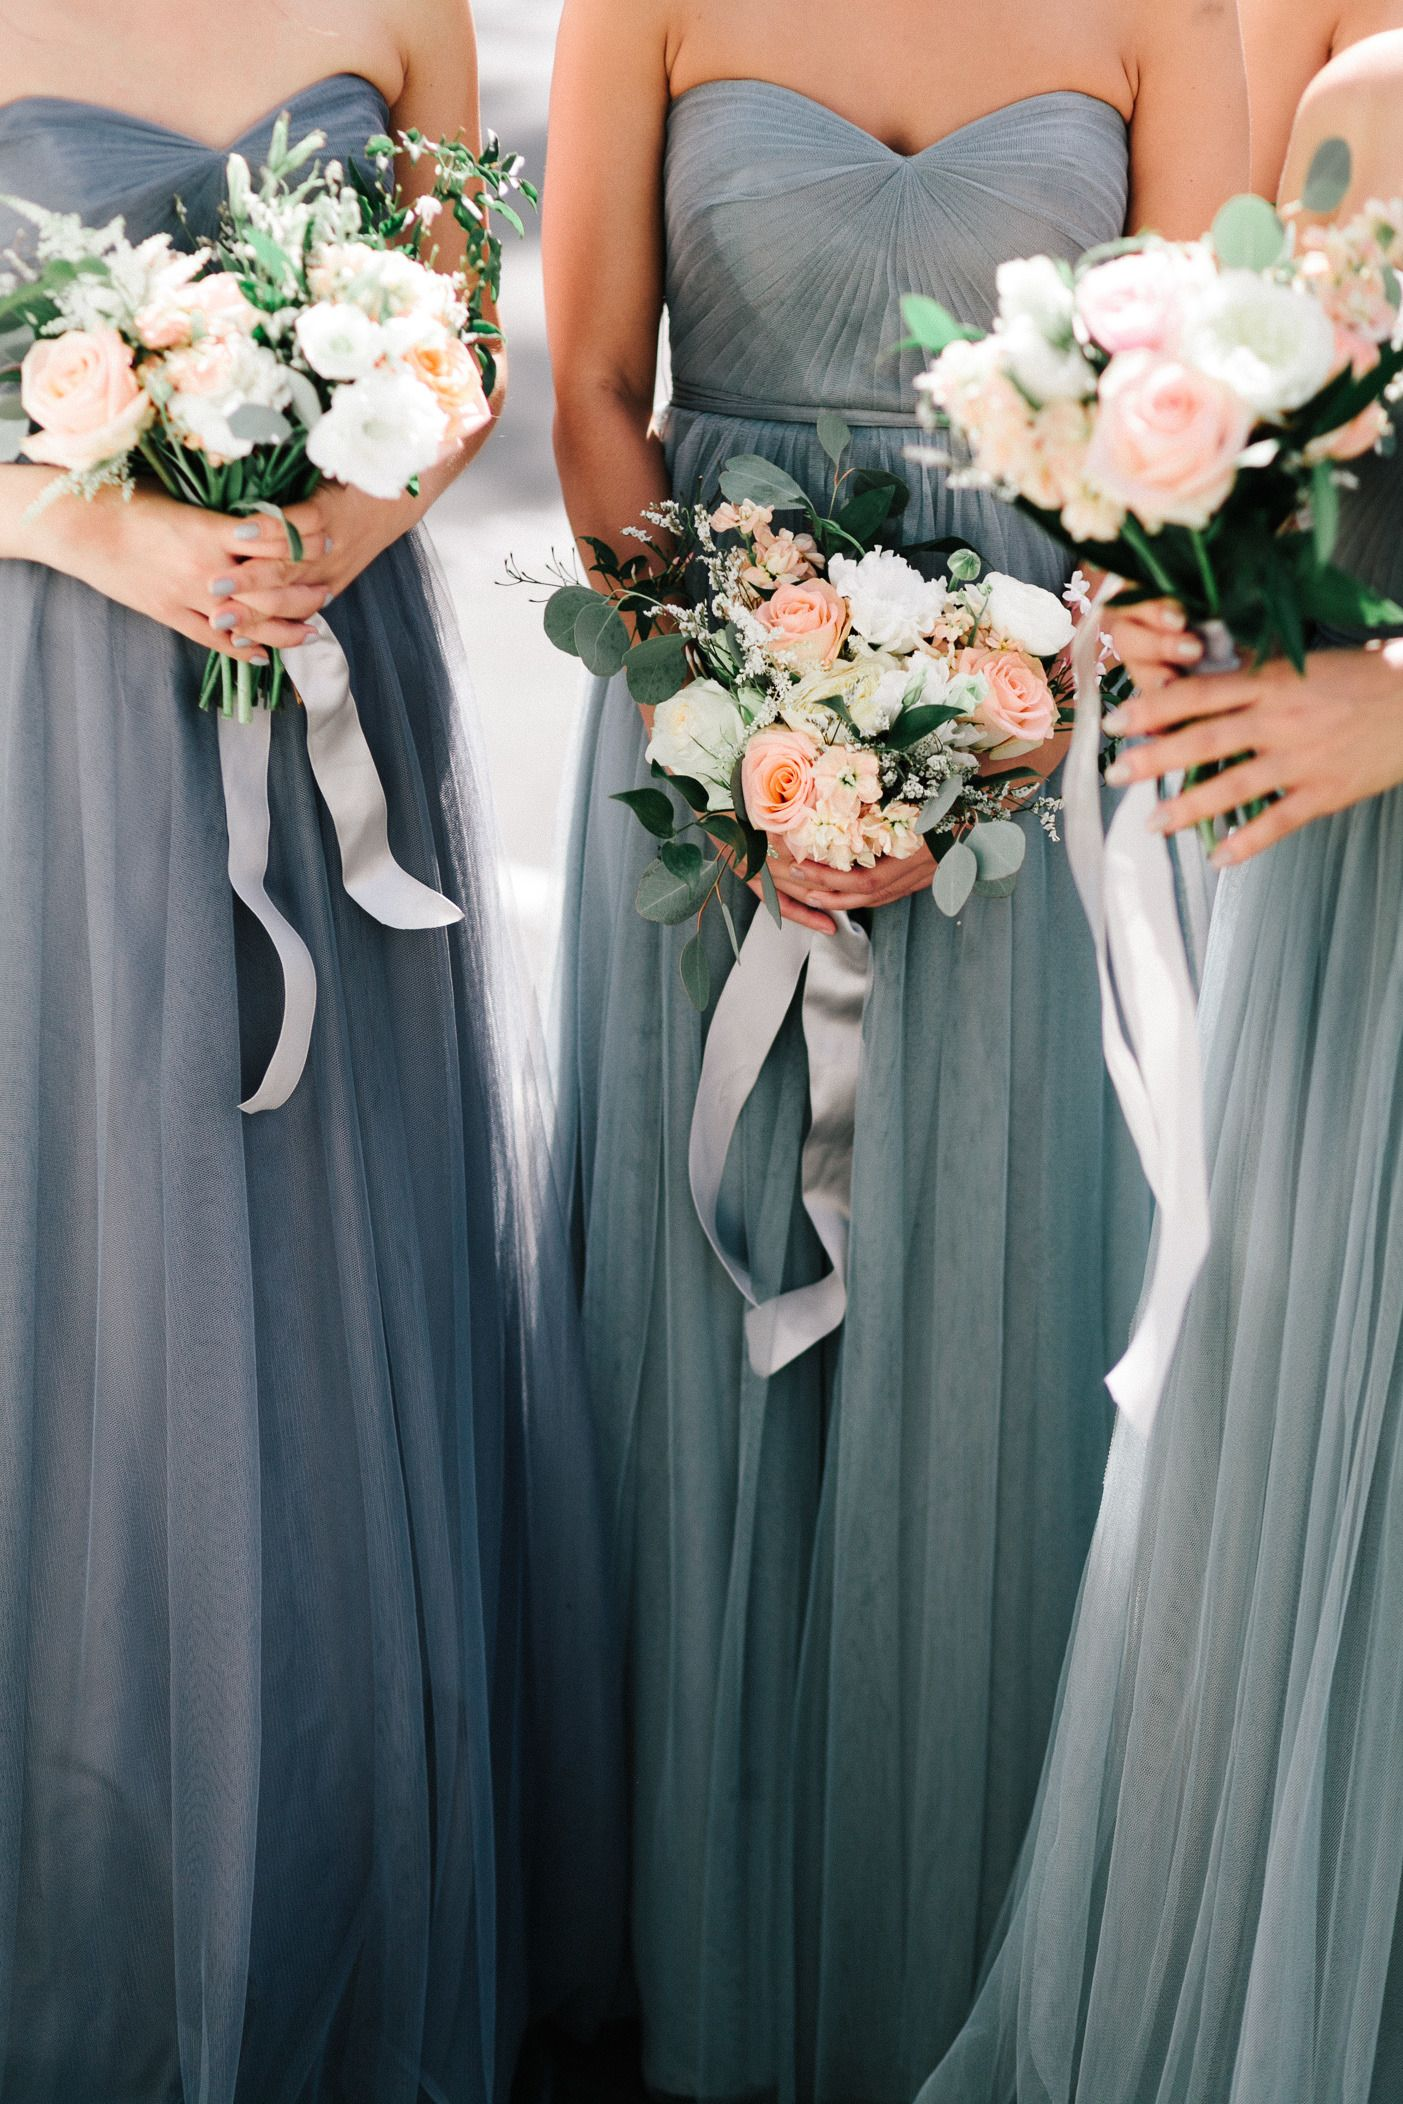 Romantic spring wedding at turnip rose garden promenade for Bridesmaid dresses for a garden wedding